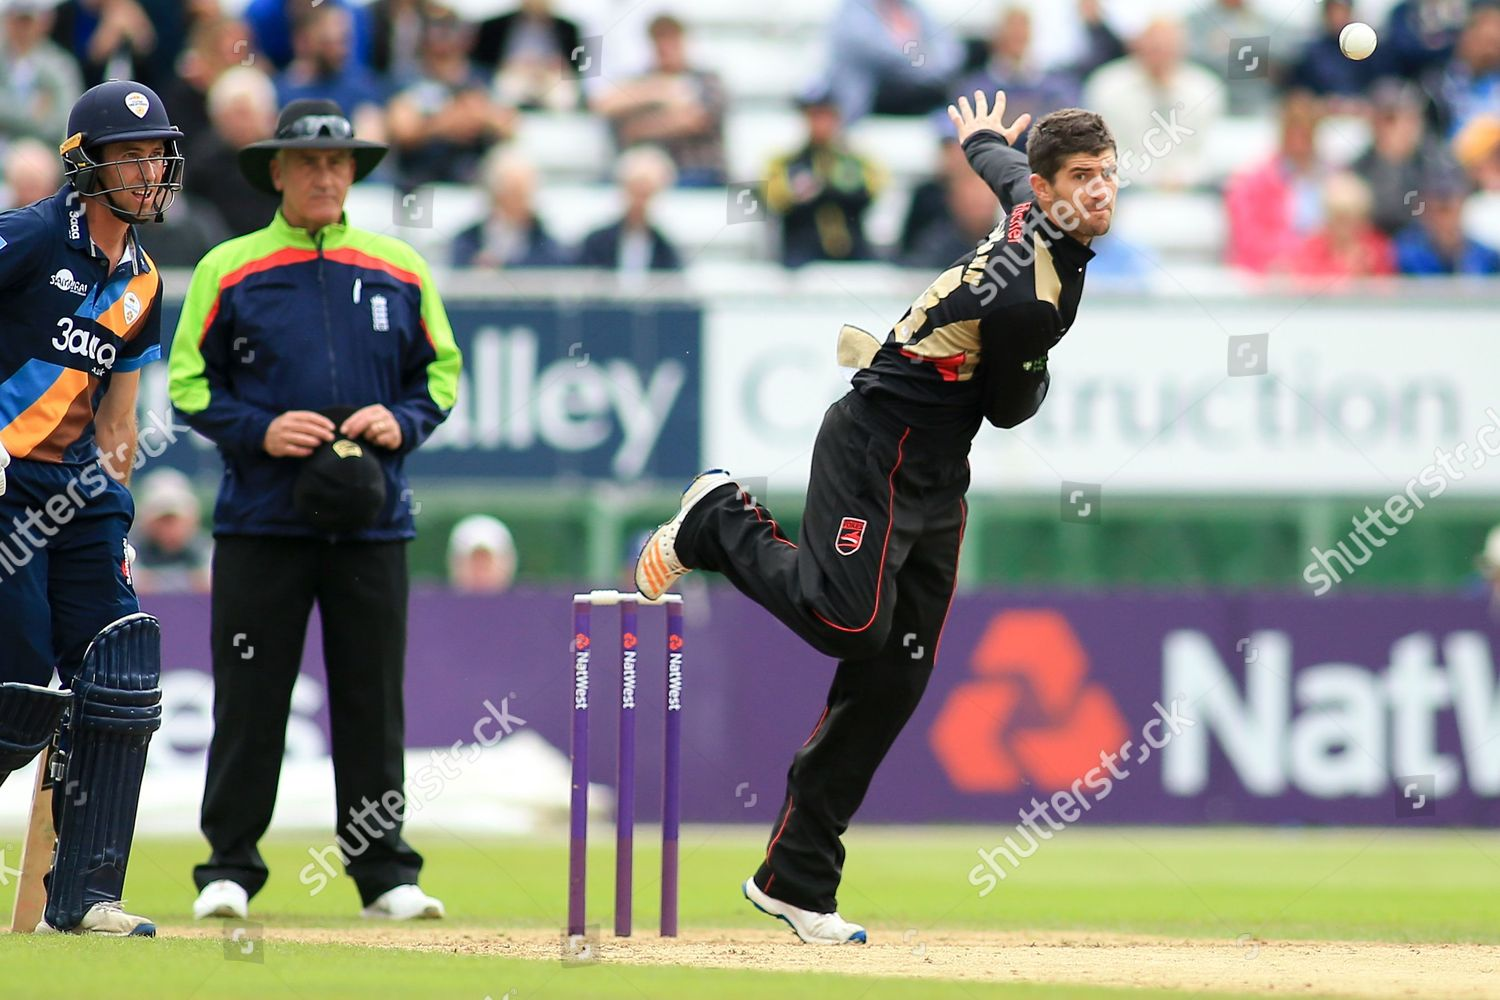 Colin Ackermann Leicestershire during Natwest T20 Blast Editorial